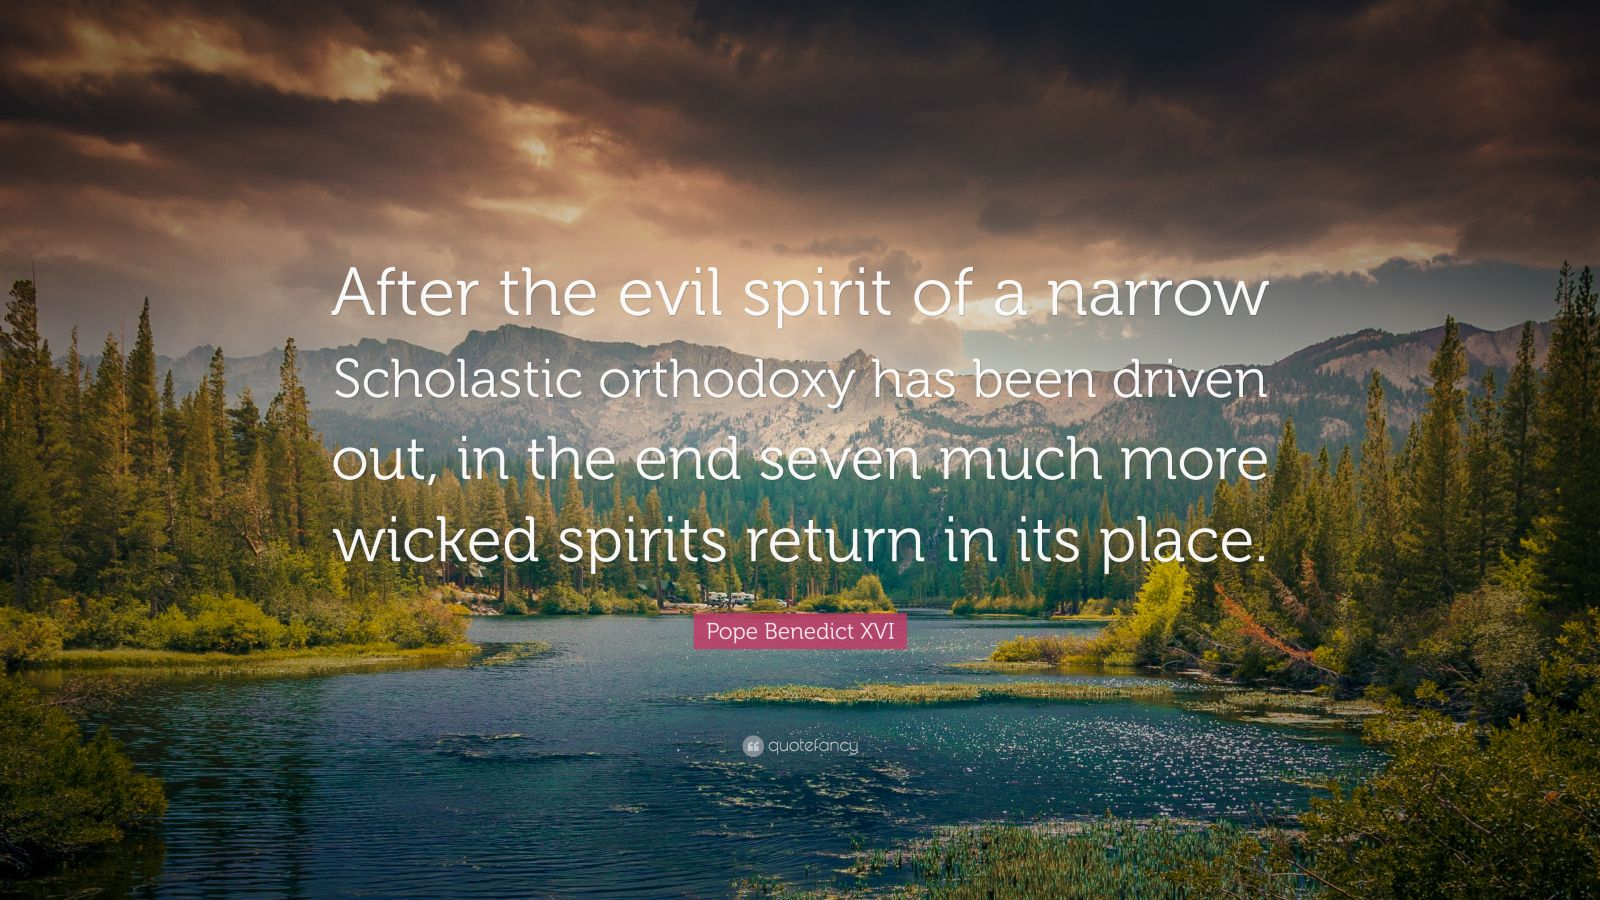 """Pope Benedict XVI Quote: """"After the evil spirit of a narrow Scholastic orthodoxy has been driven out, in the end seven much more wicked spirits return in its place."""""""